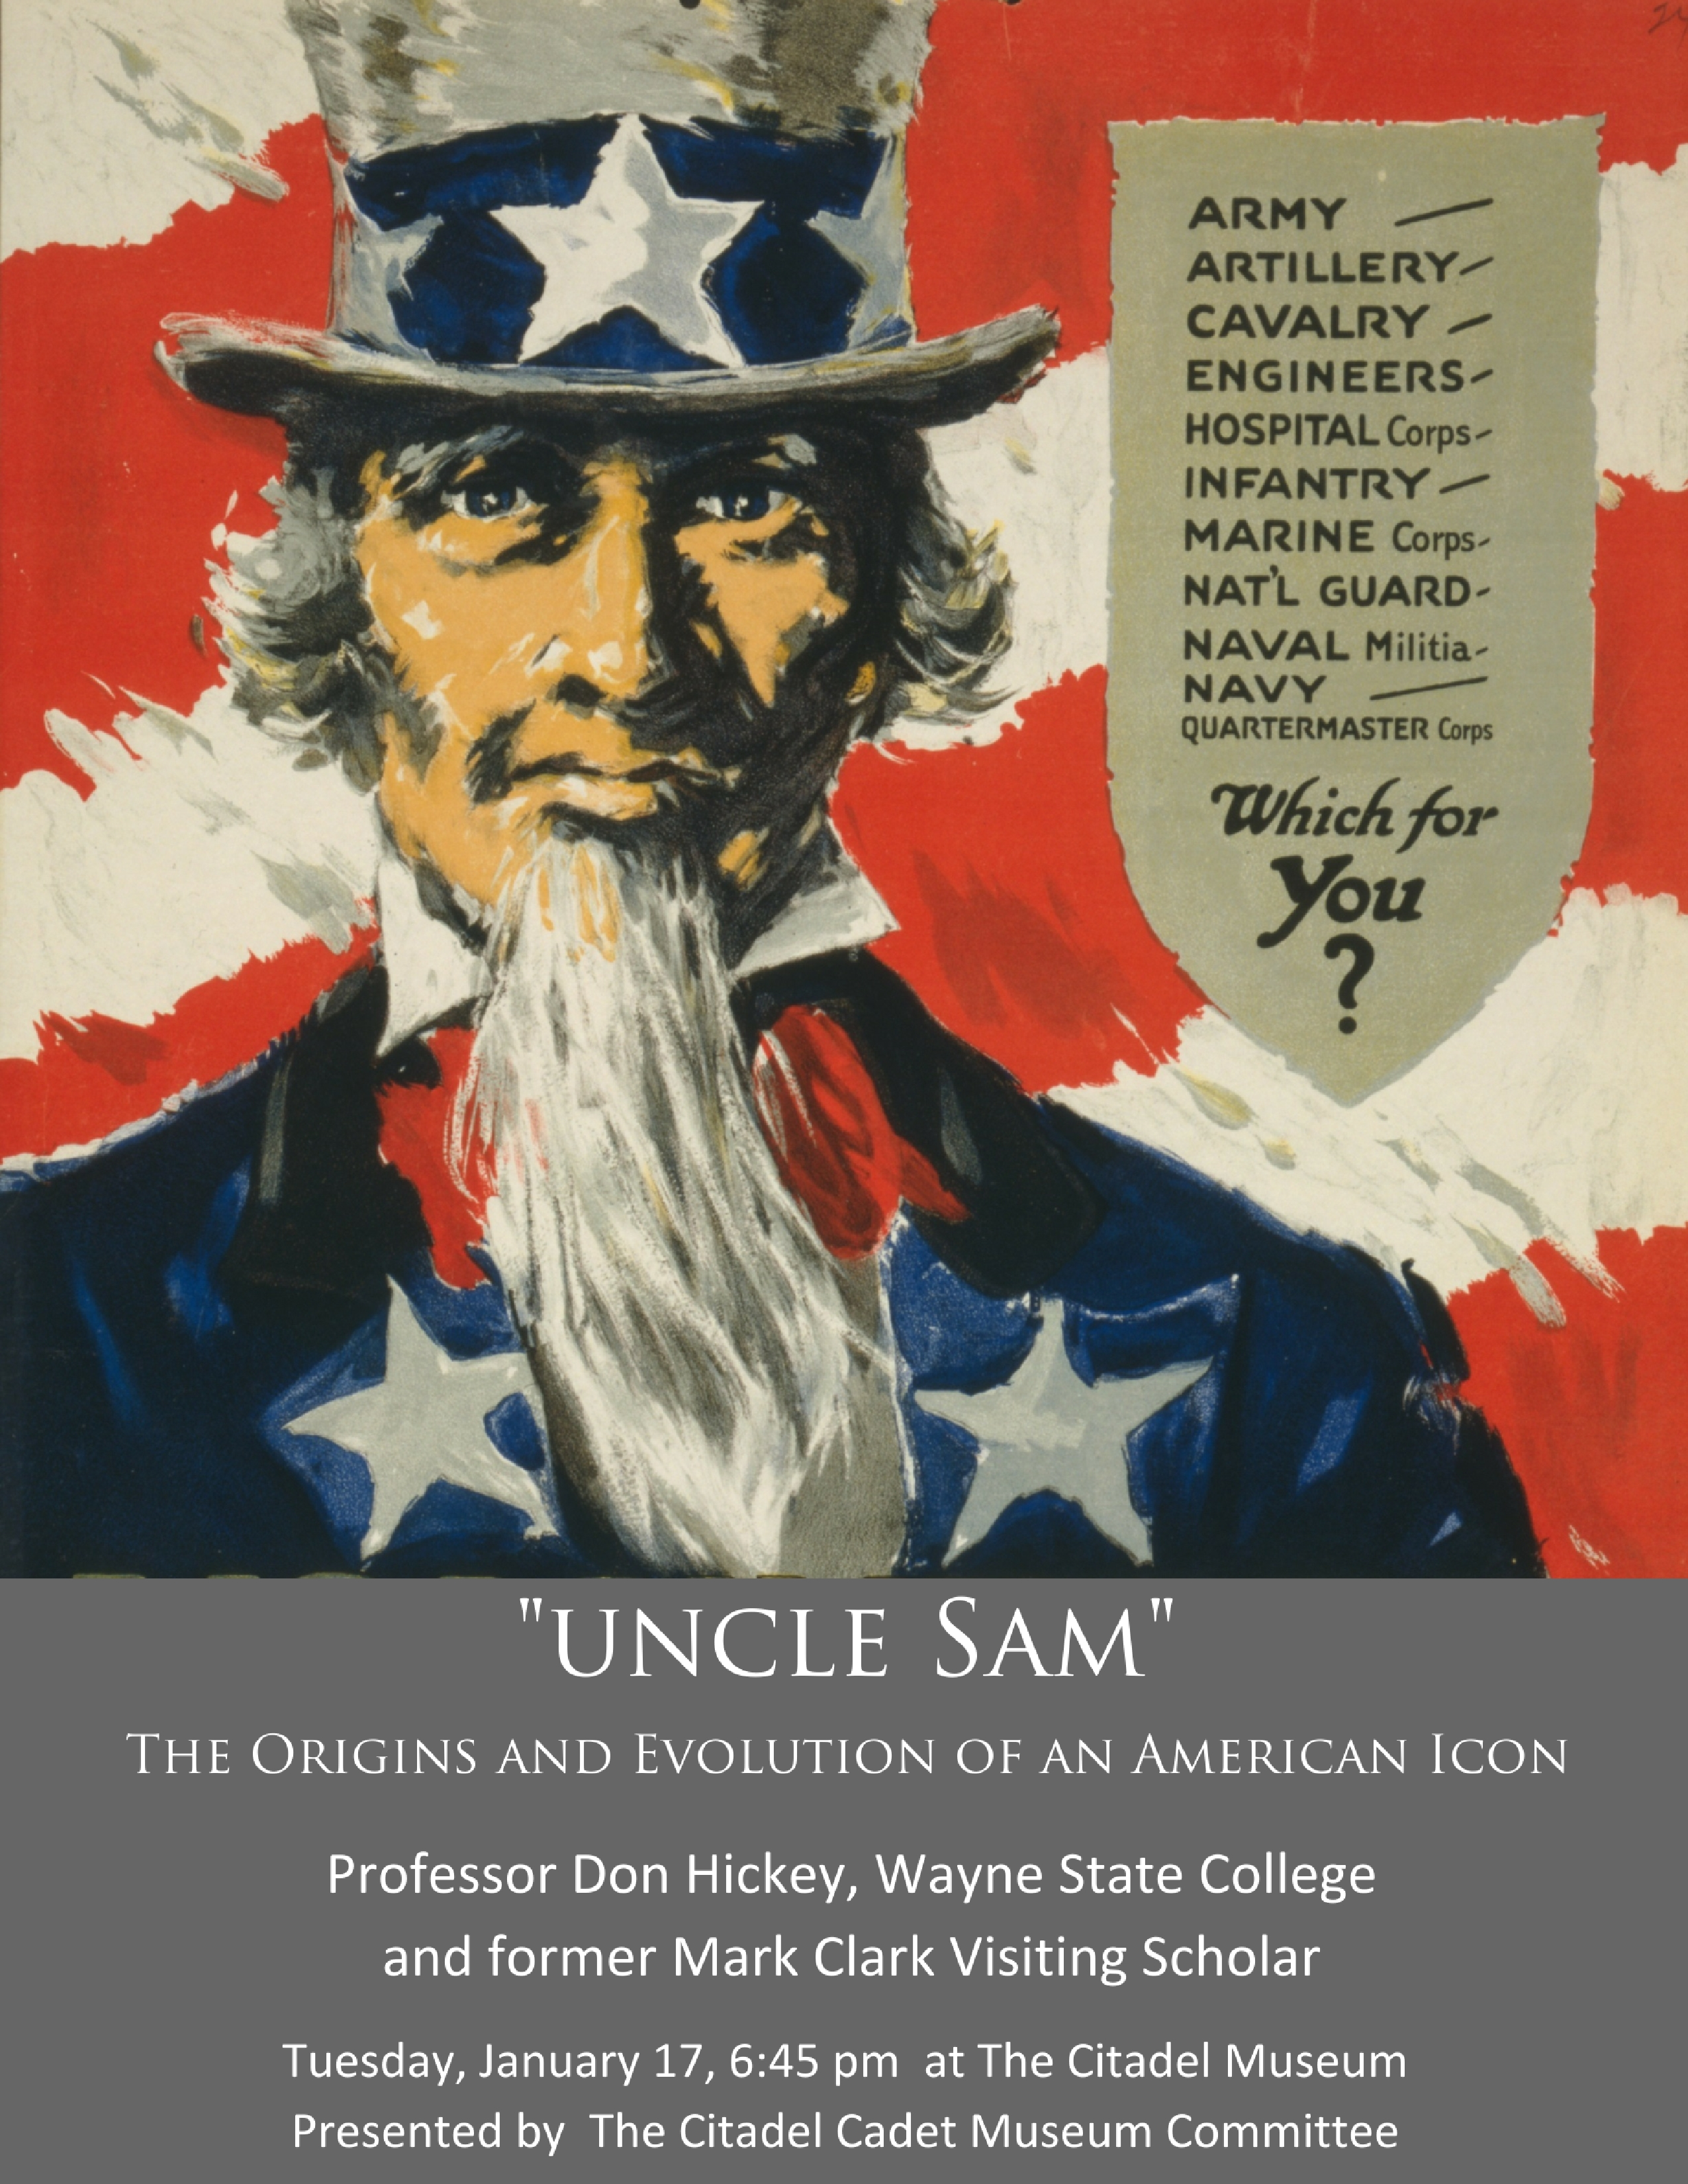 uncle sam event poster